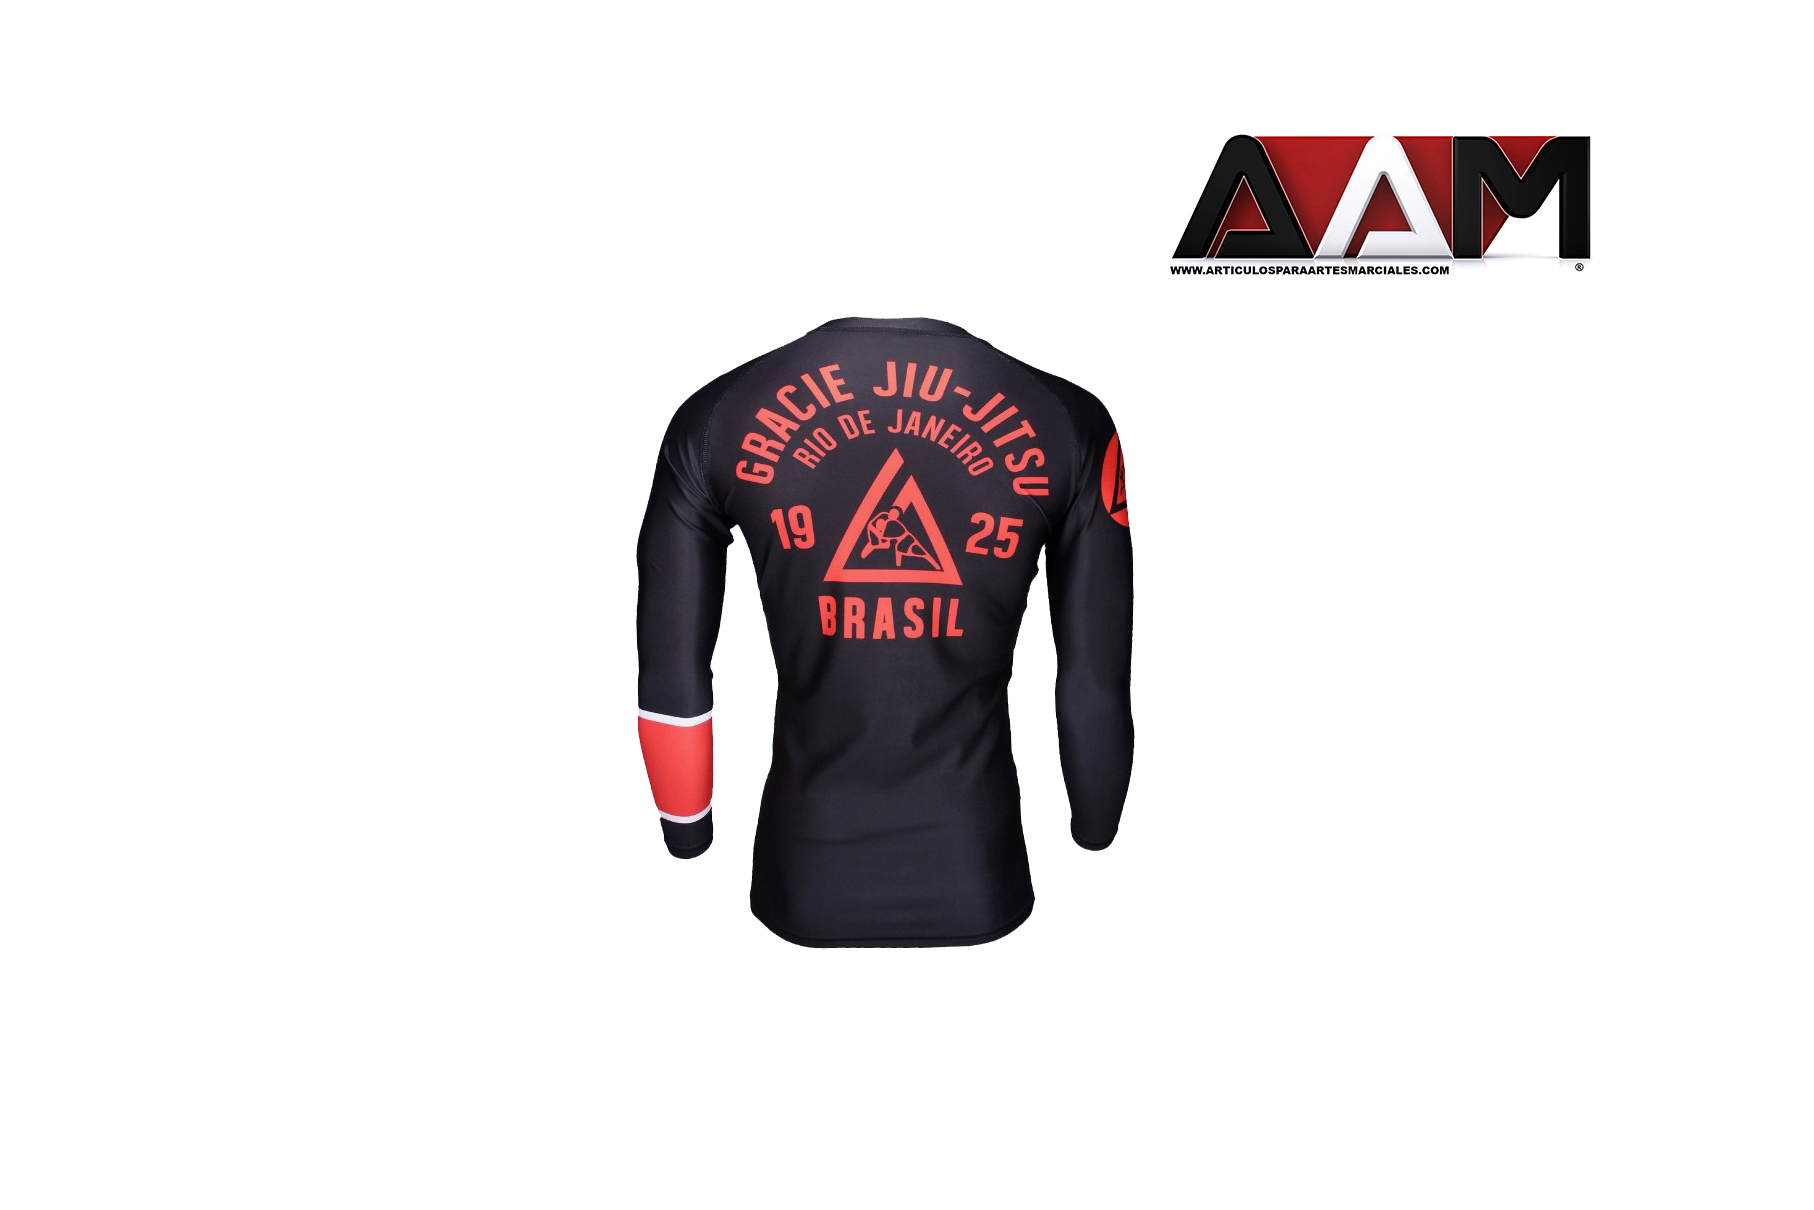 Gracie jiu jitsu long sleeve ranked rash guard